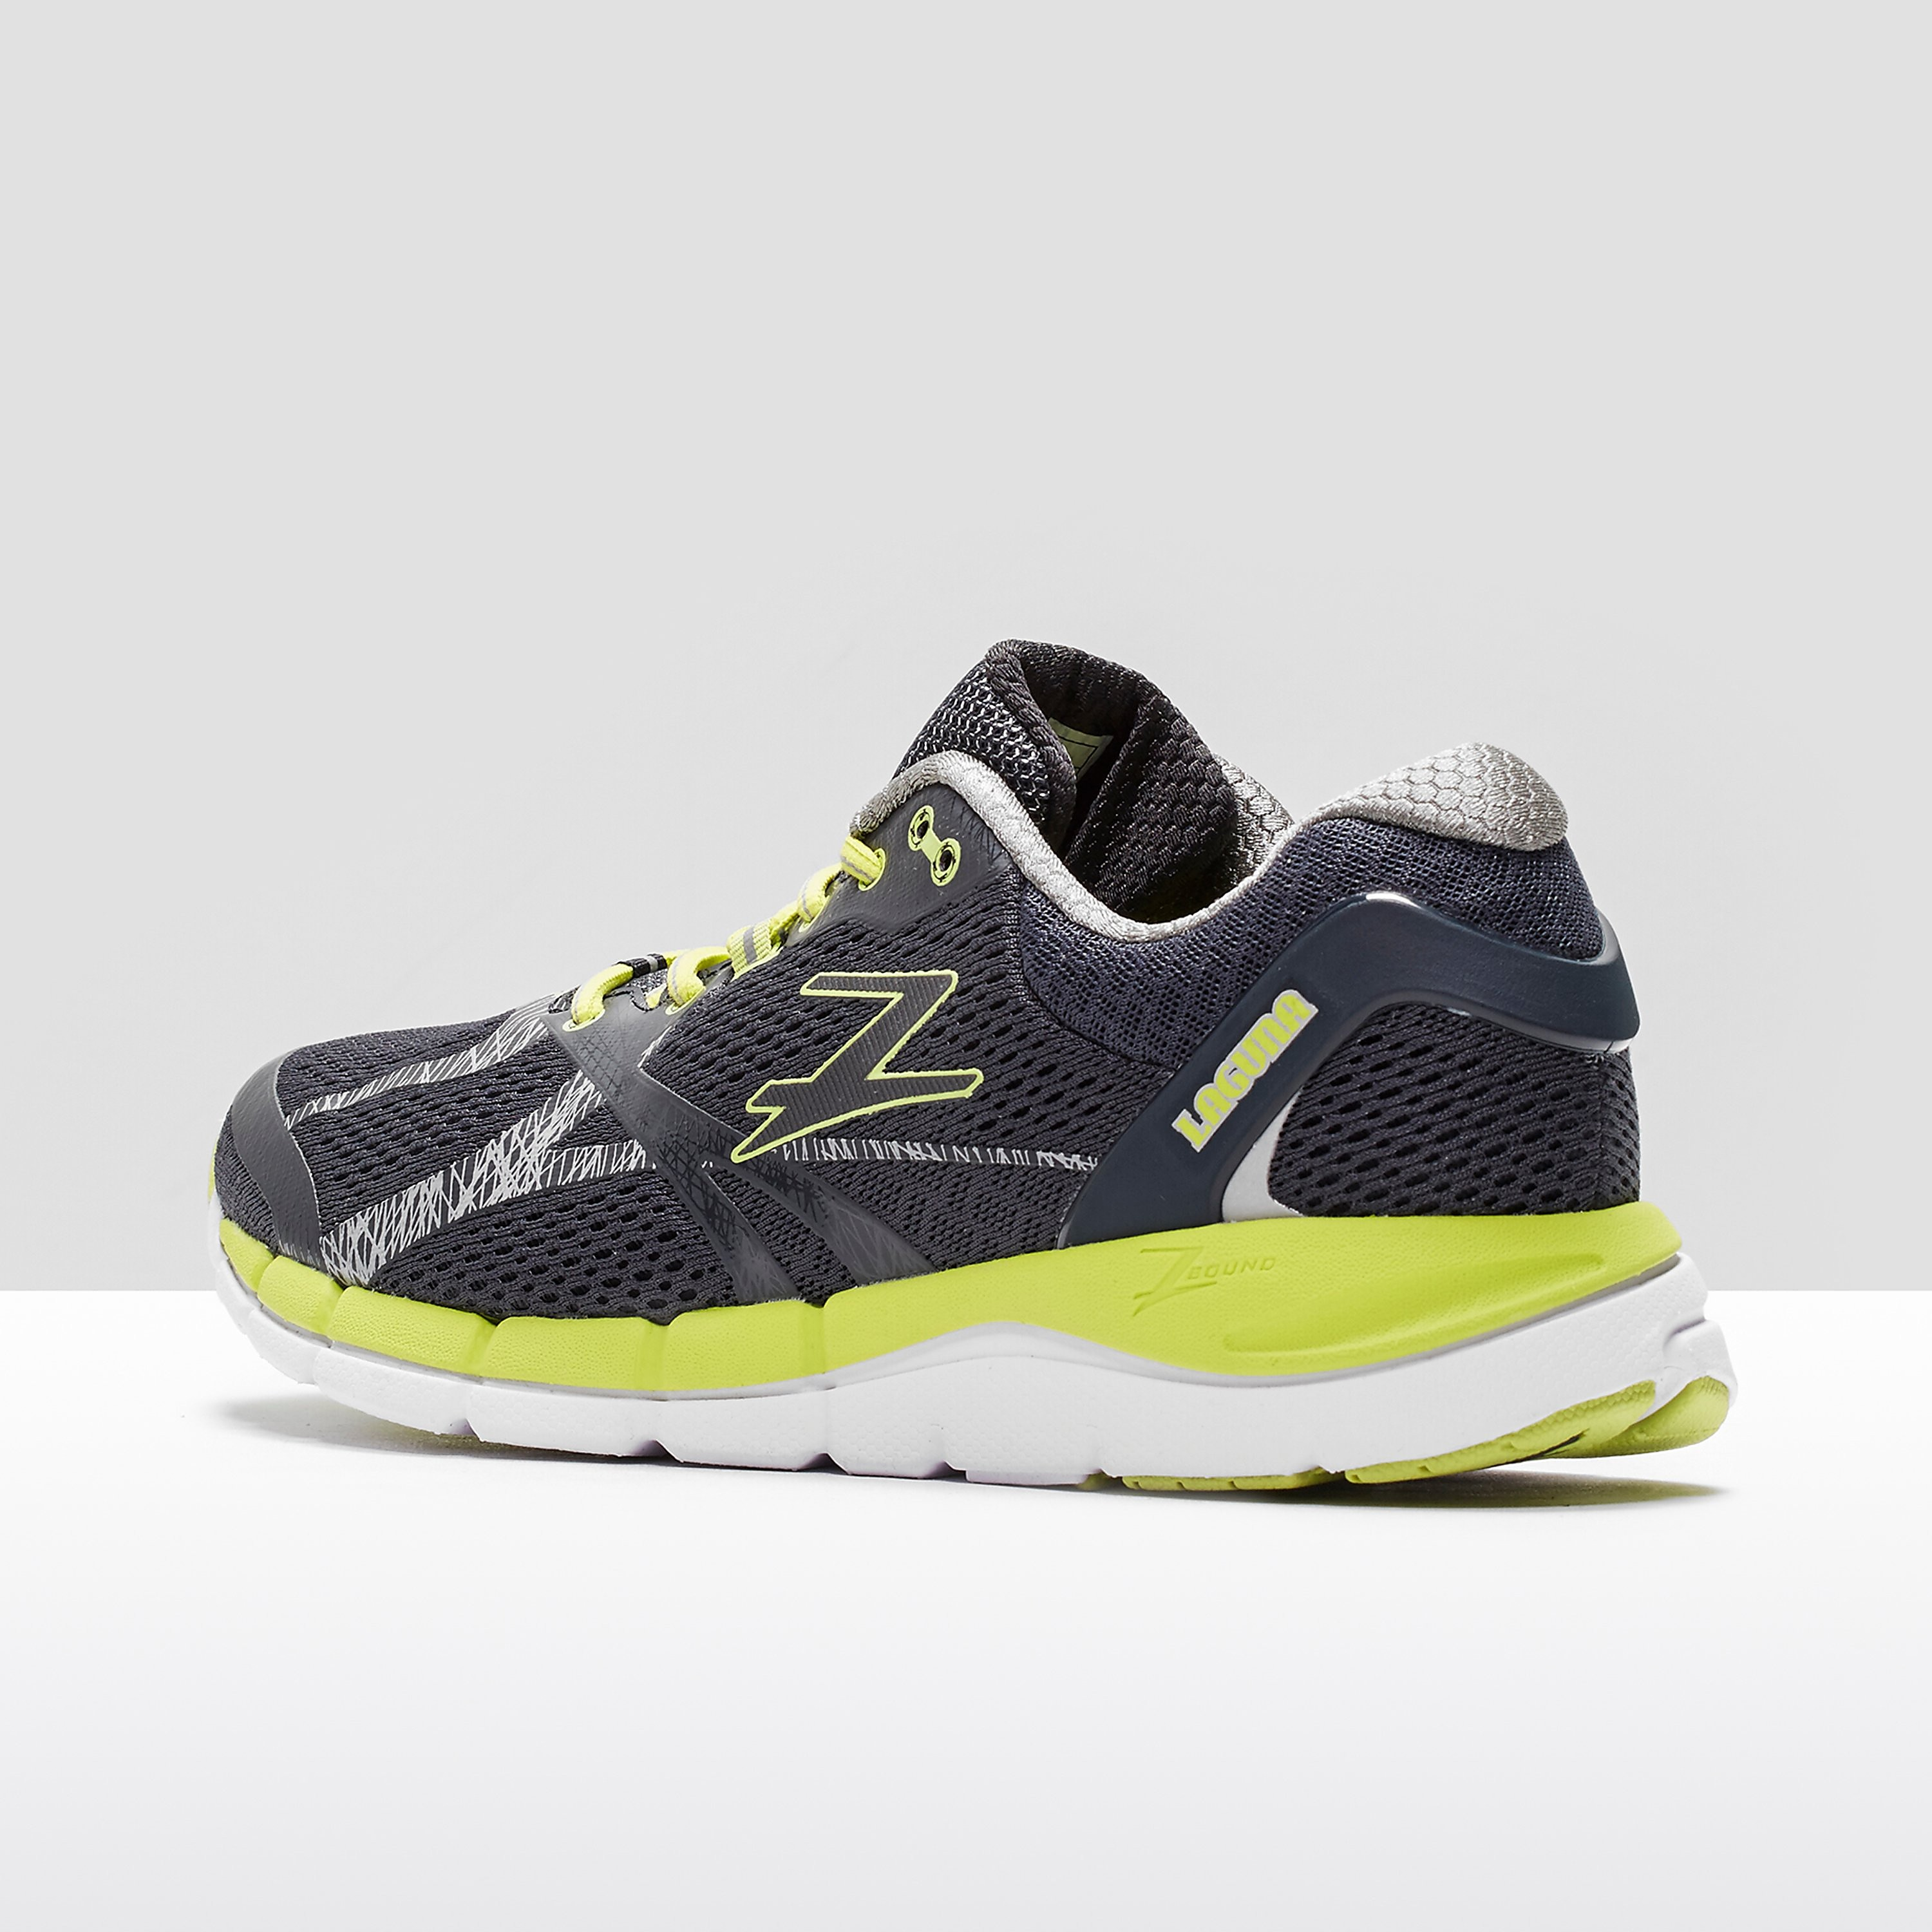 Zoot Laguna Men's Running Shoe